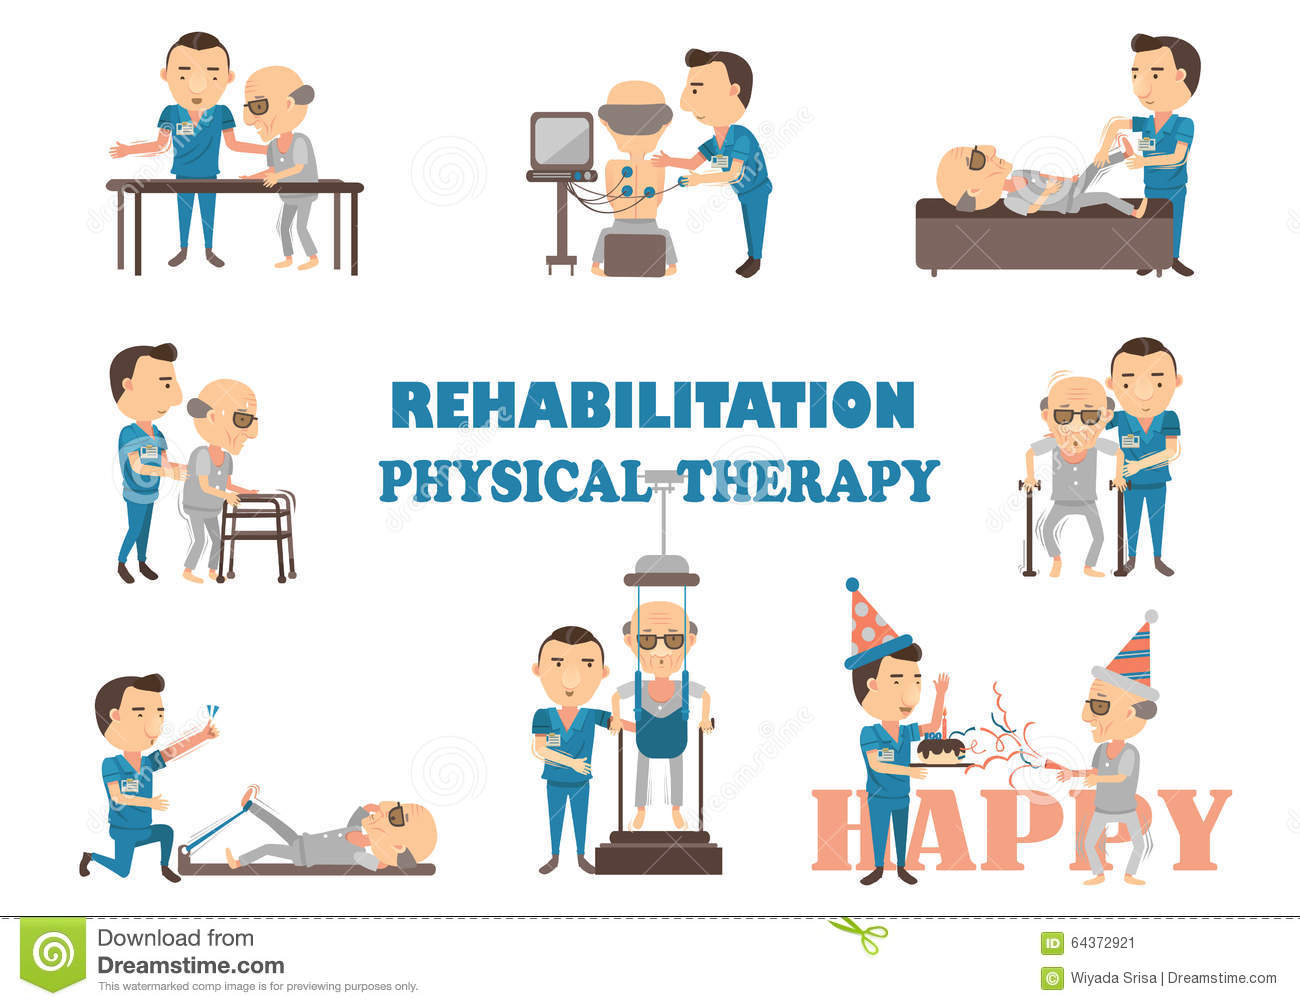 Cartoon physical therapy - Royalty Free Vector Download Rehabilitation Physical Therapy